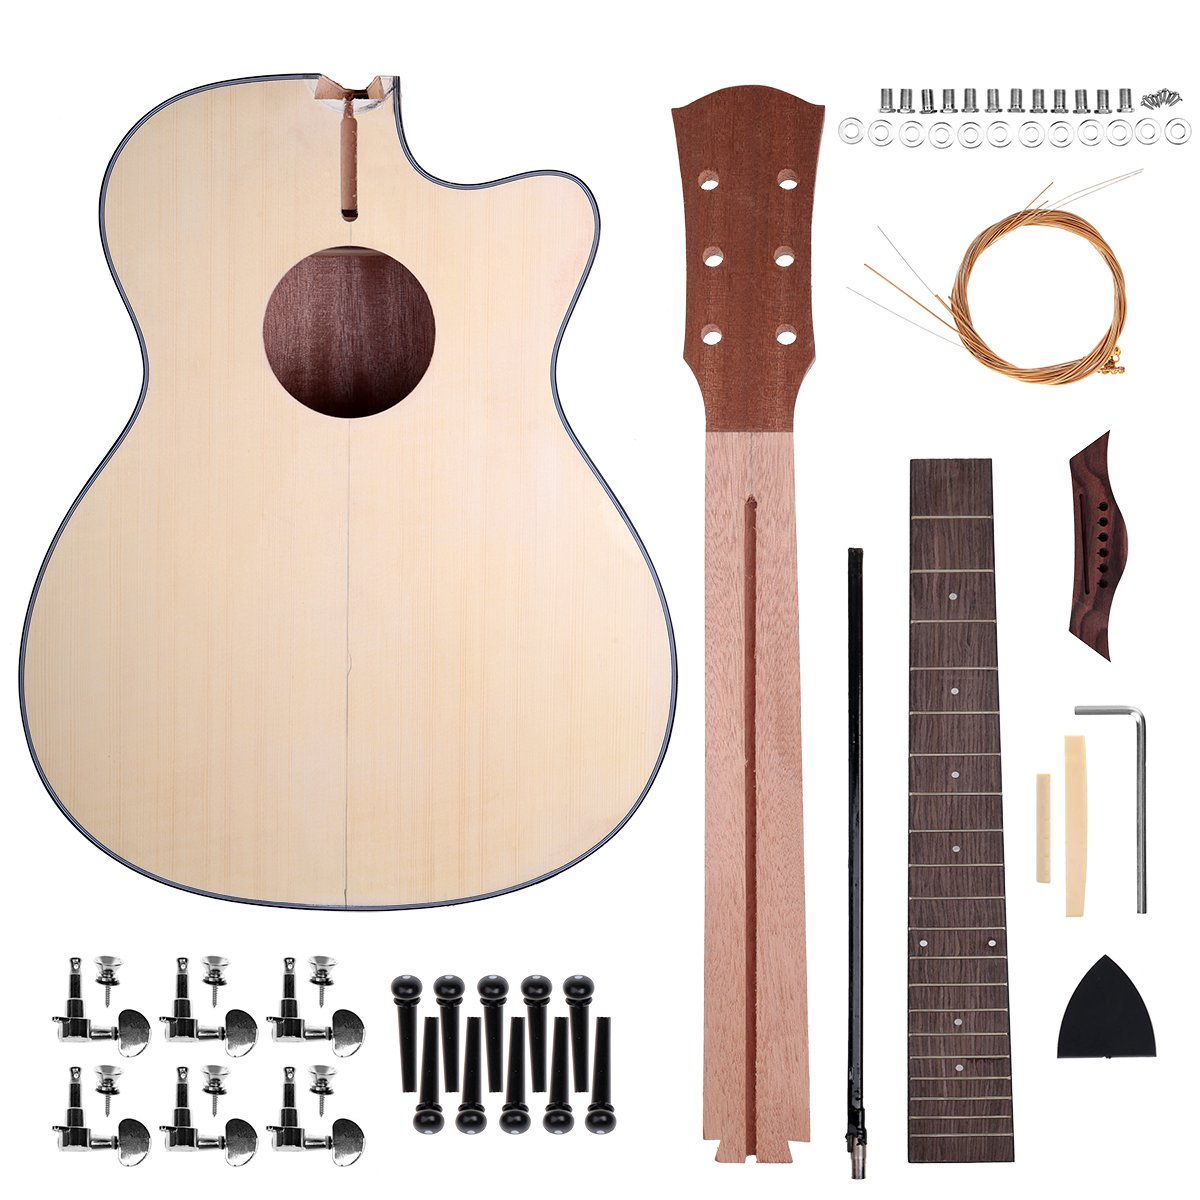 Caiyuangg Acoustic Guitar Kit Diy Design Your Own Style 40